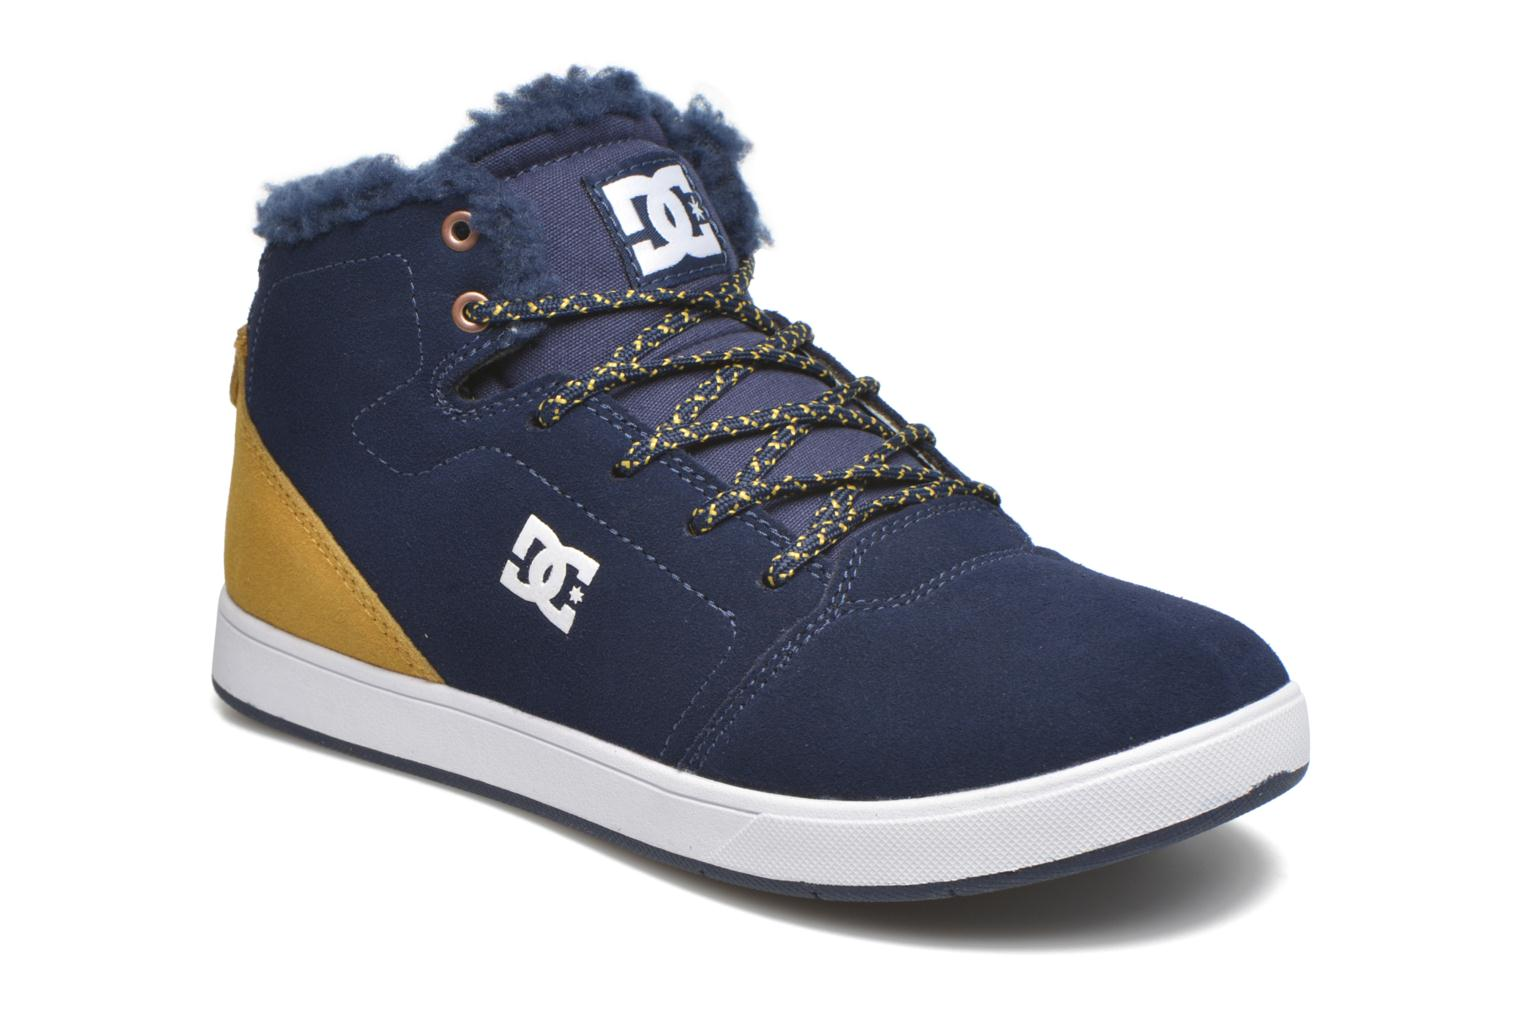 CRISIS HIGH WNT Navy/gold